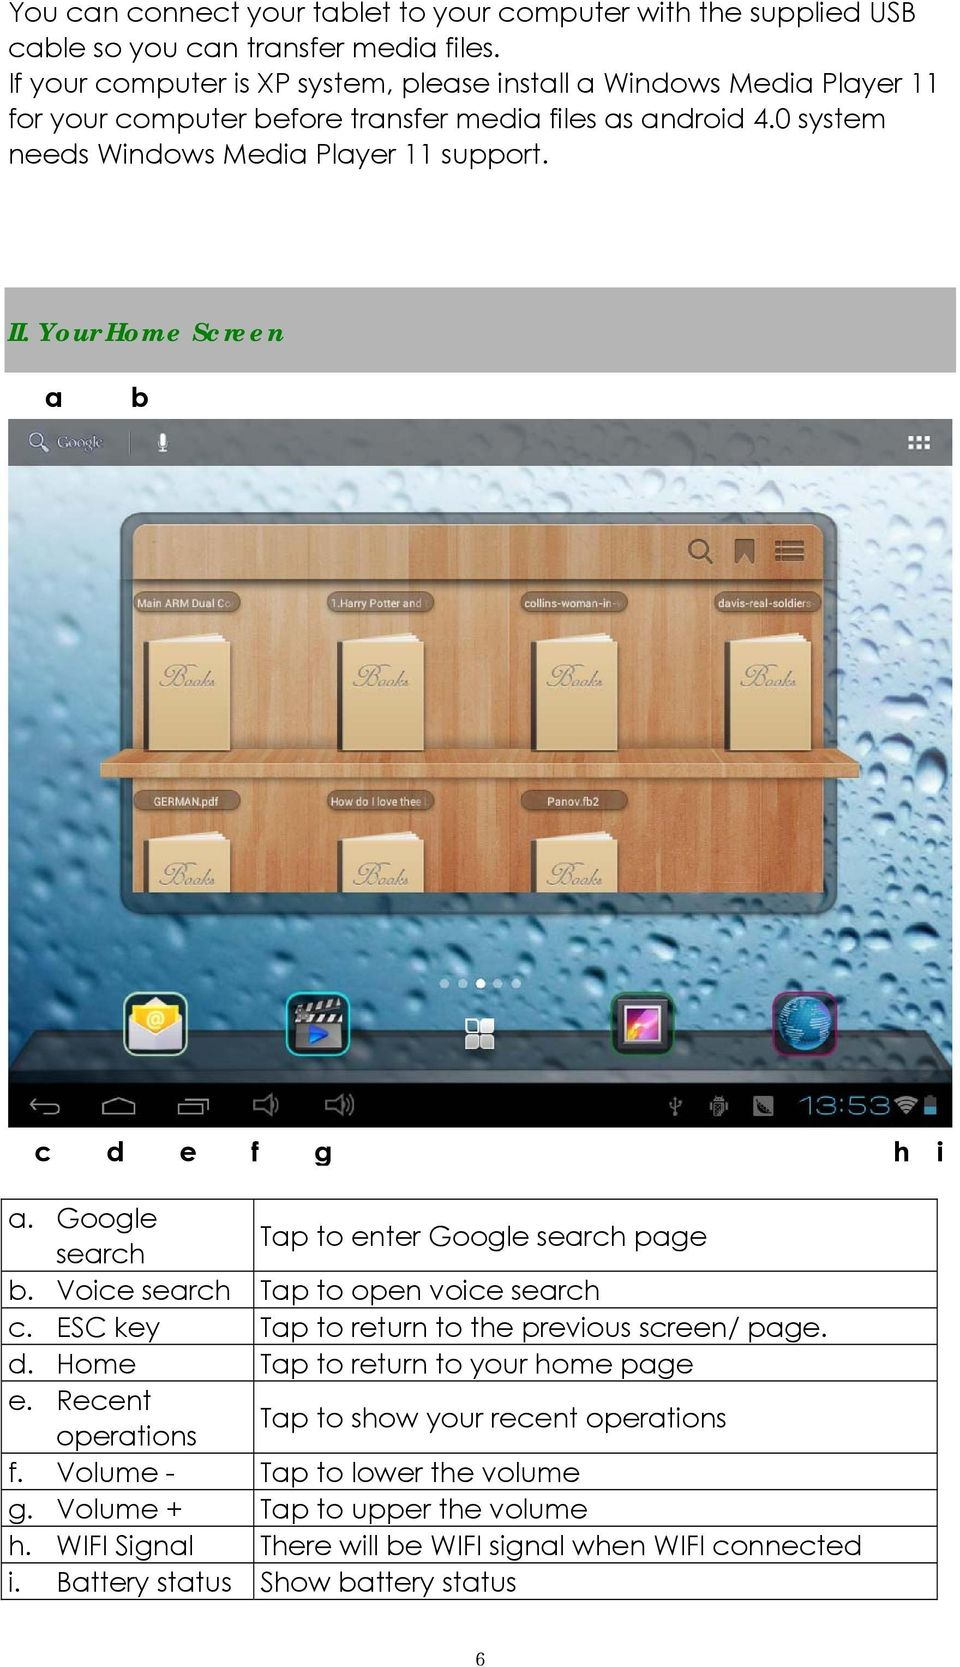 Your Home Screen a b c d e f g h i a. Google search Tap to enter Google search page b. Voice search Tap to open voice search c. ESC key Tap to return to the previous screen/ page. d. Home Tap to return to your home page e.